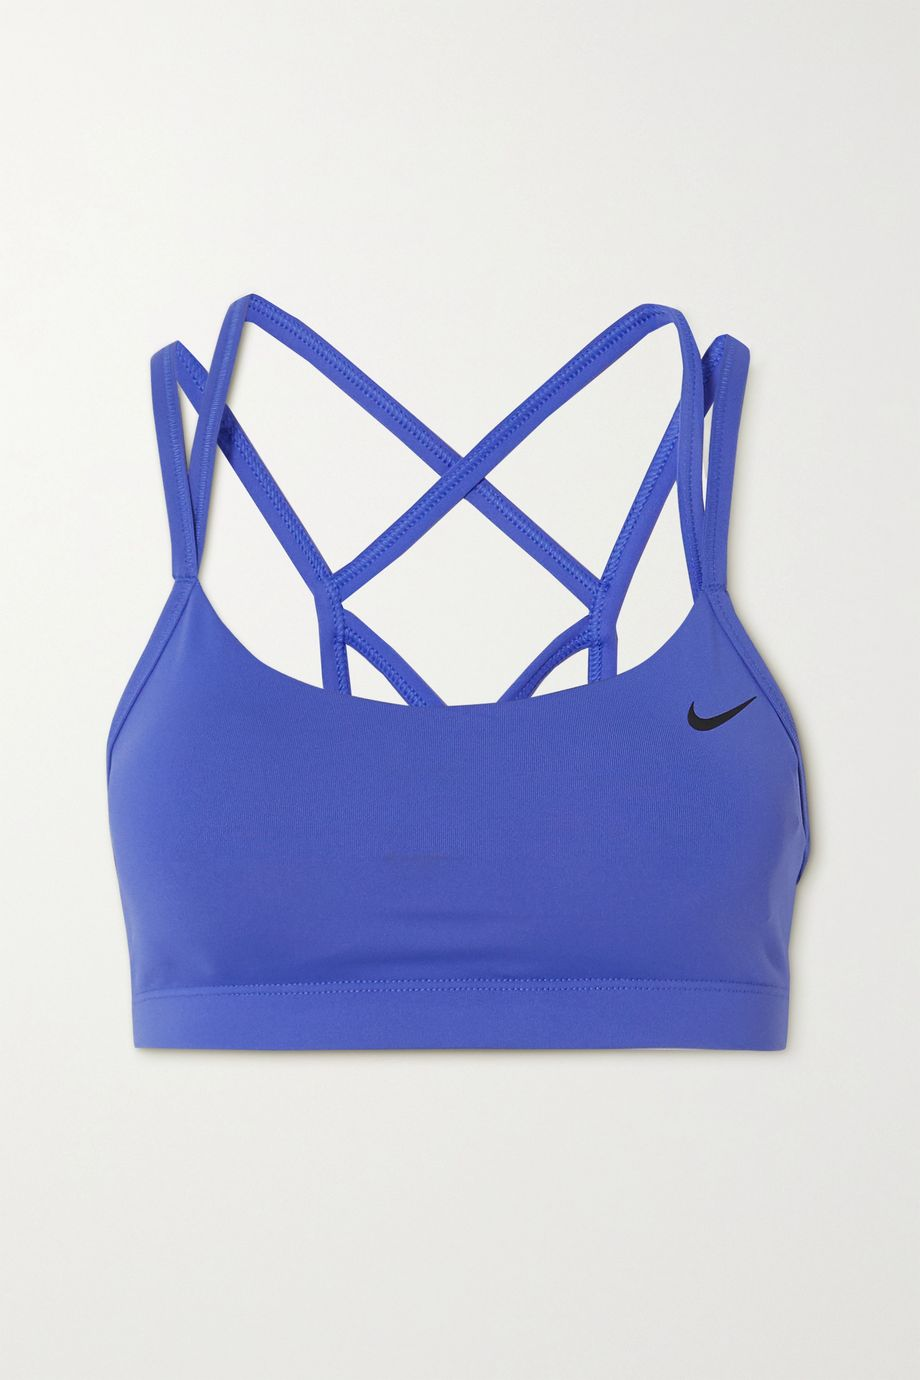 Nike Favorites Dri-FIT sports bra